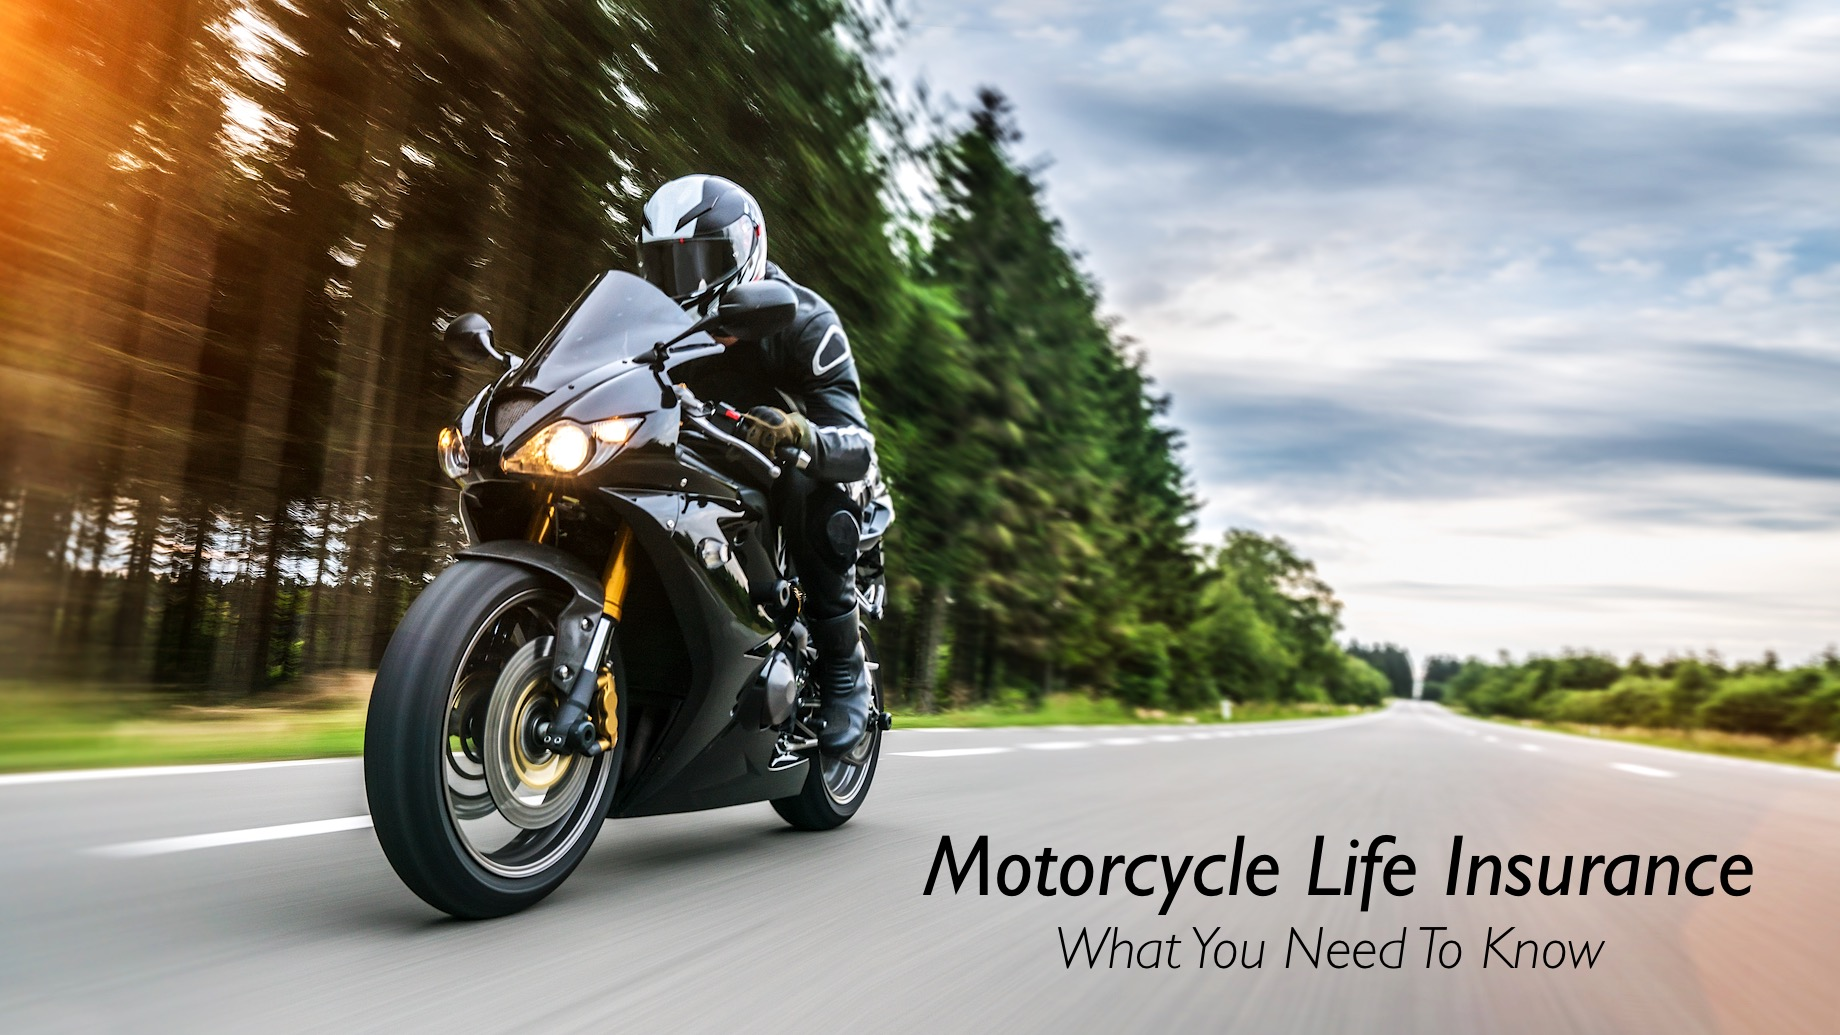 Motorcycle Life Insurance - What You Need To Know